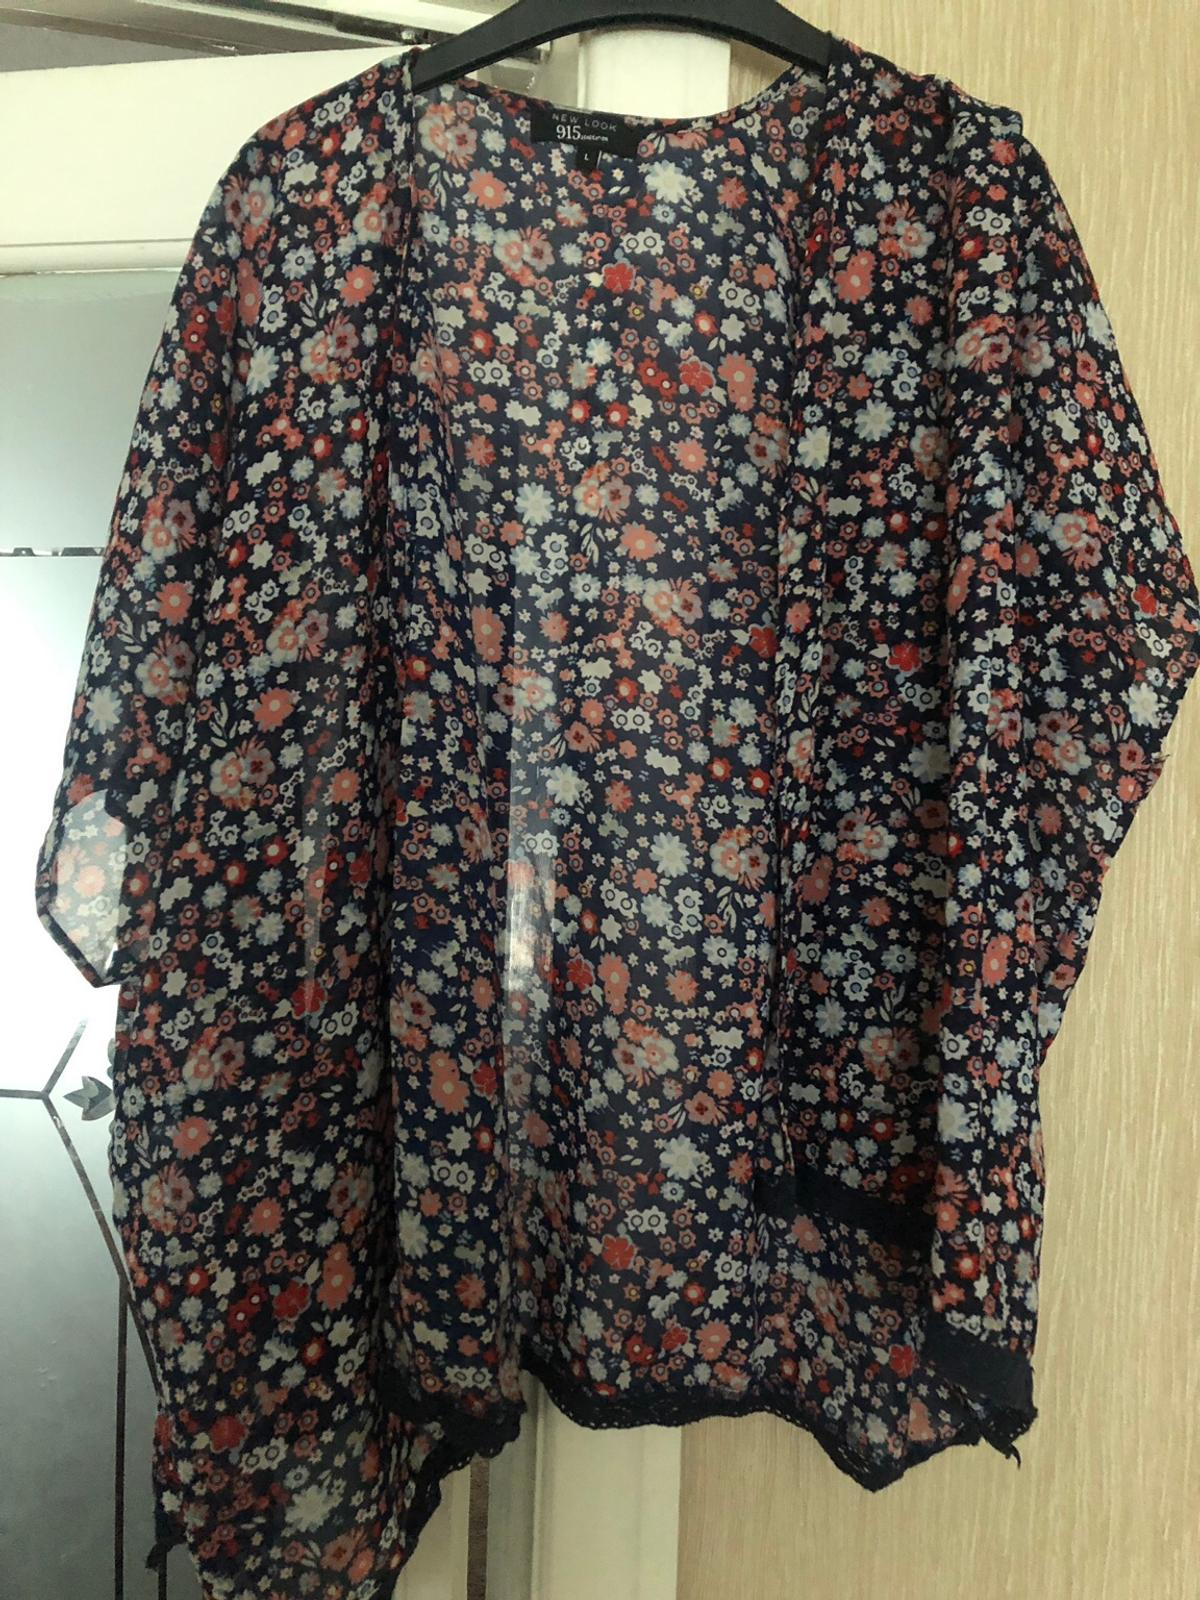 A girls large new look floral kimono. Worn once